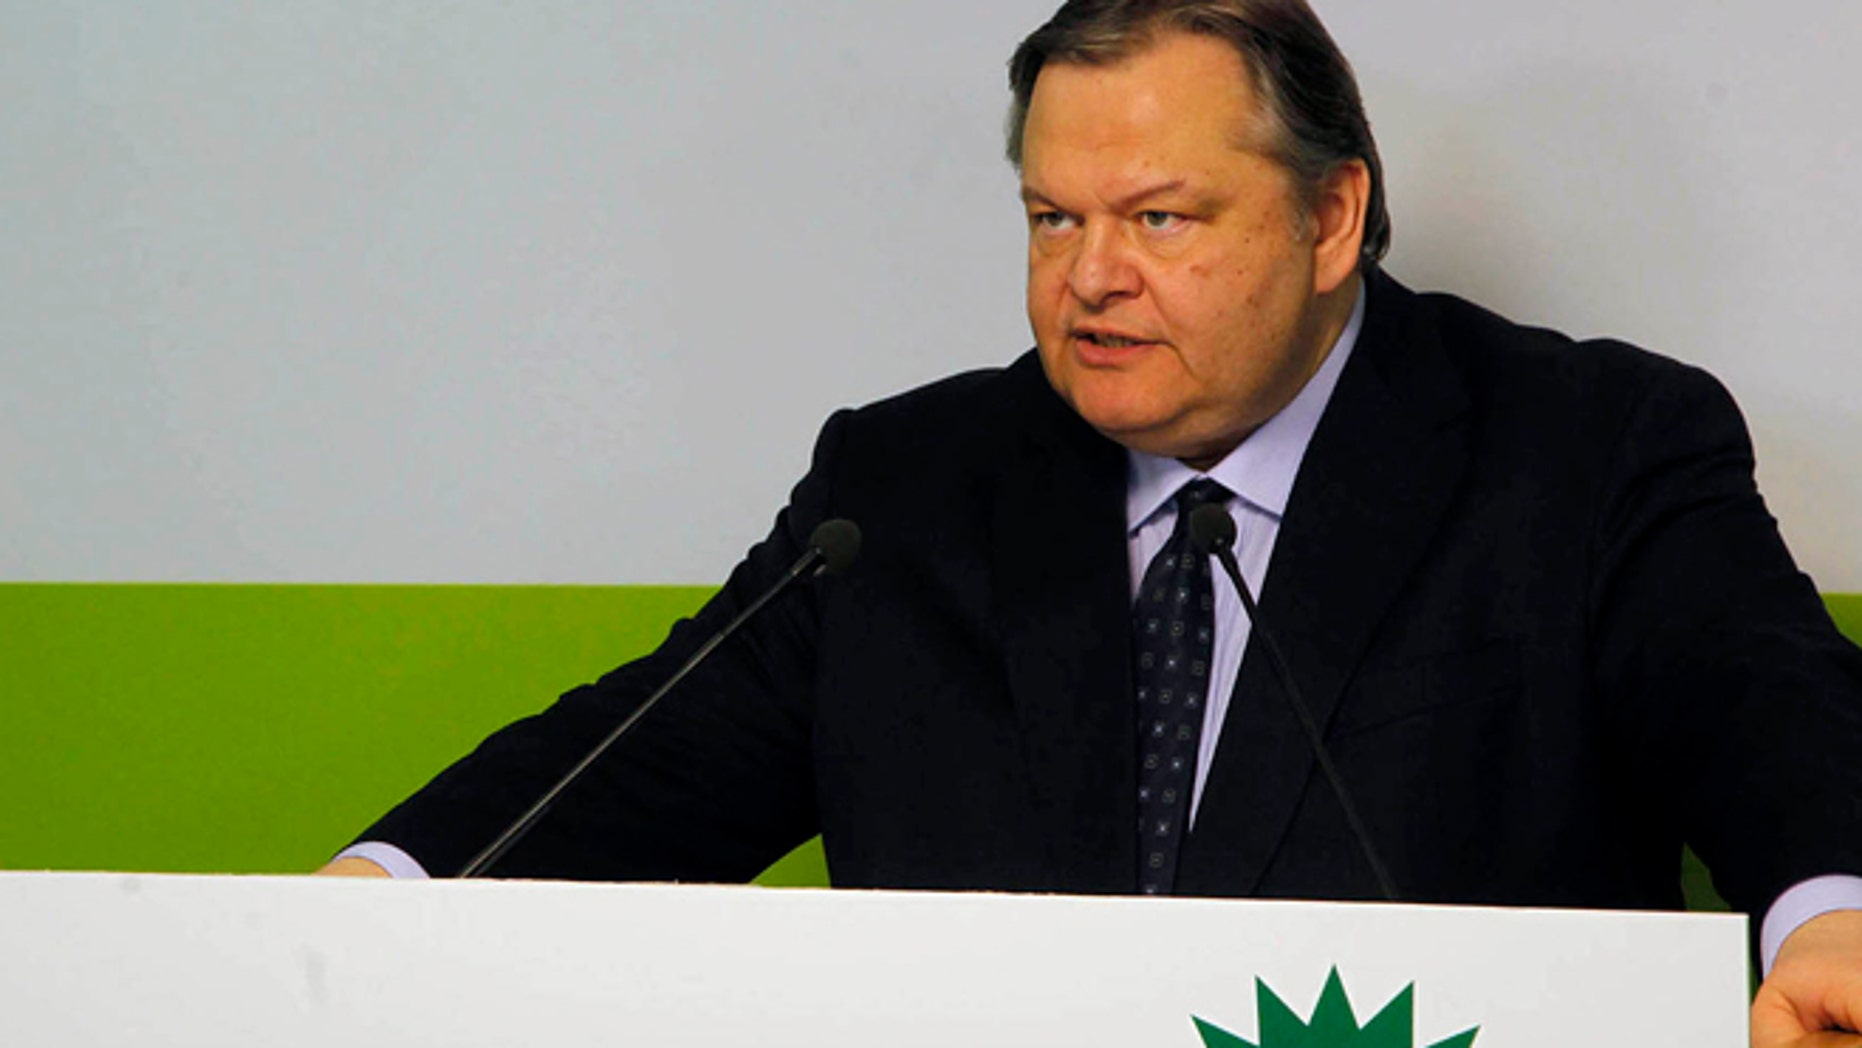 May 6, 2012: Greece's socialist leader, Evangelos Venizelos of the PASOK party makes statements in Athens.